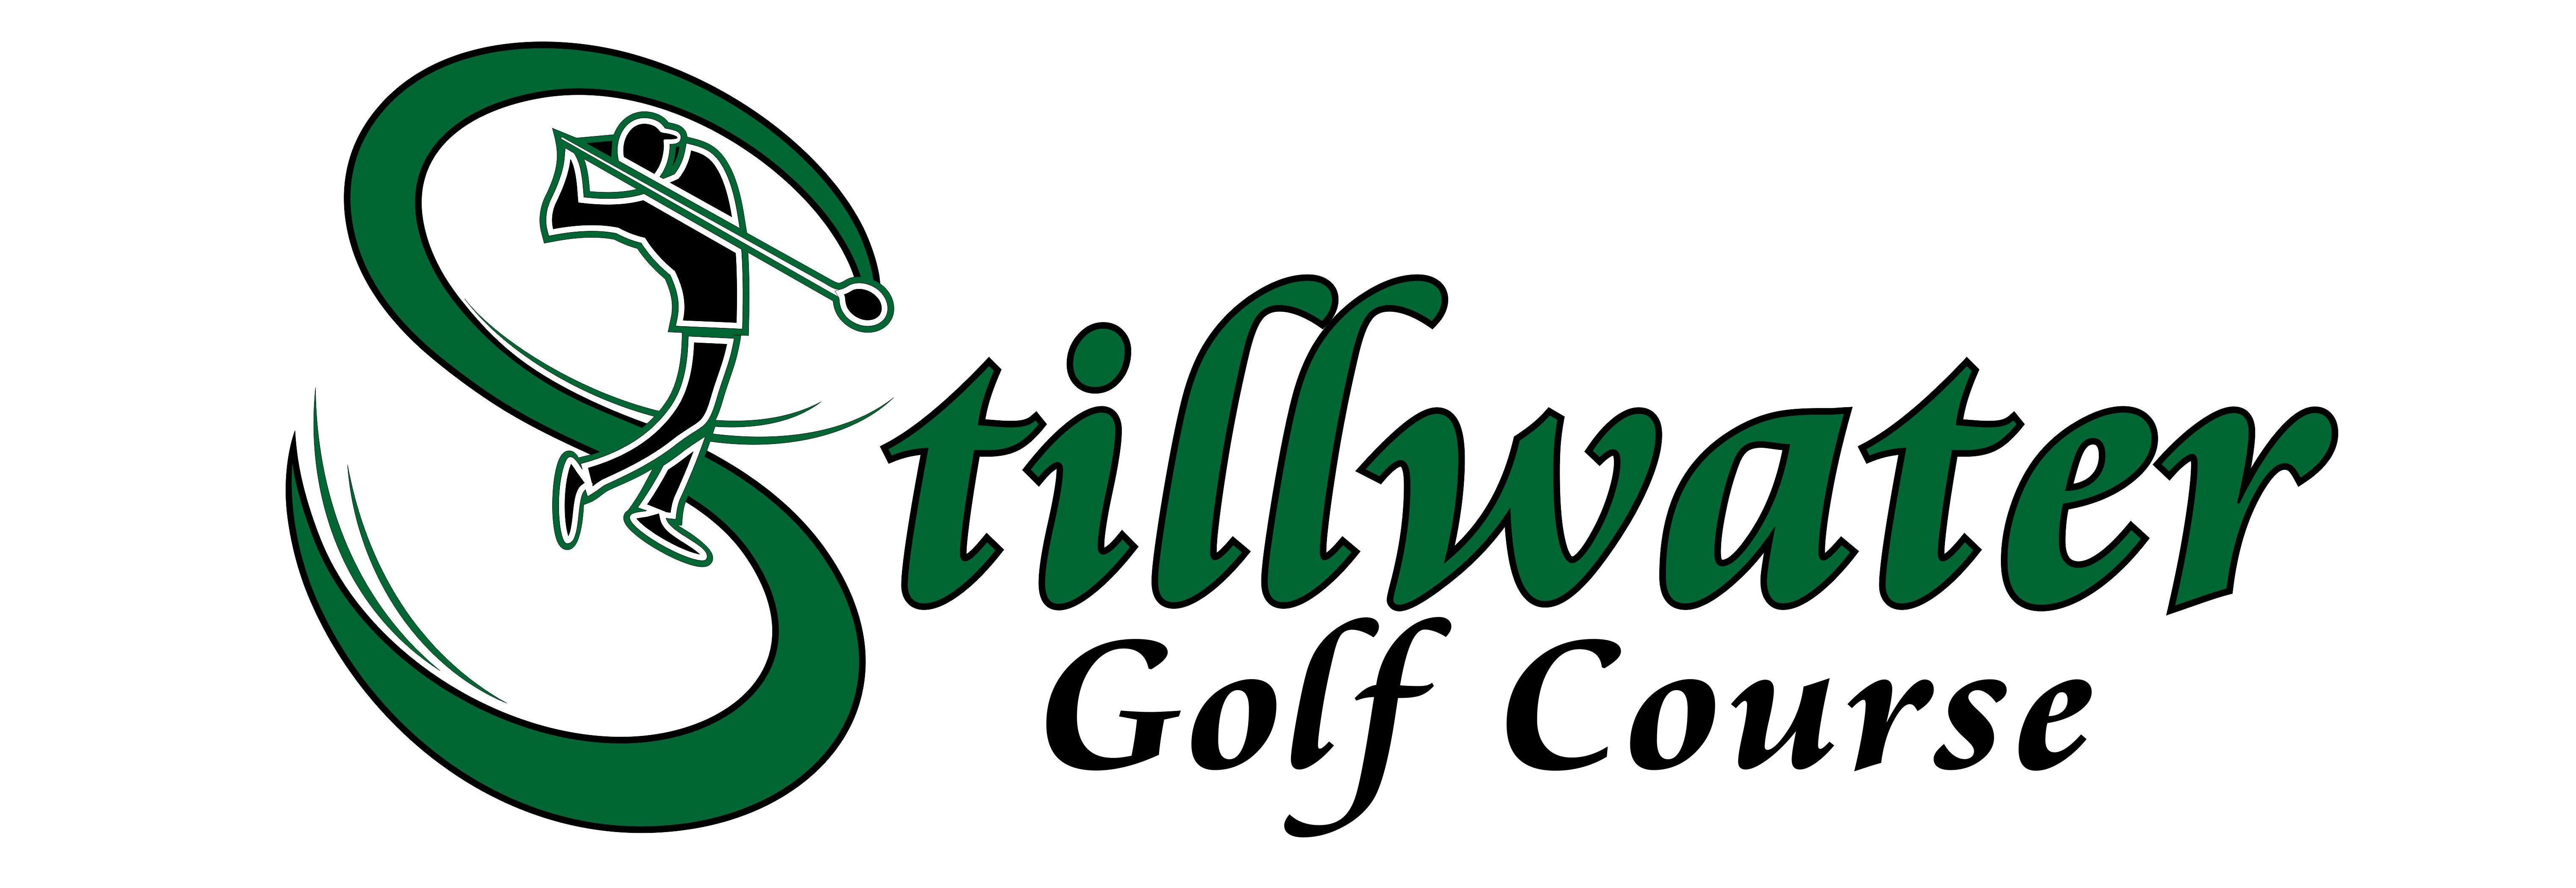 https://www.golflink.com/golf-courses/mt/columbus/stillwater-golf-recreation